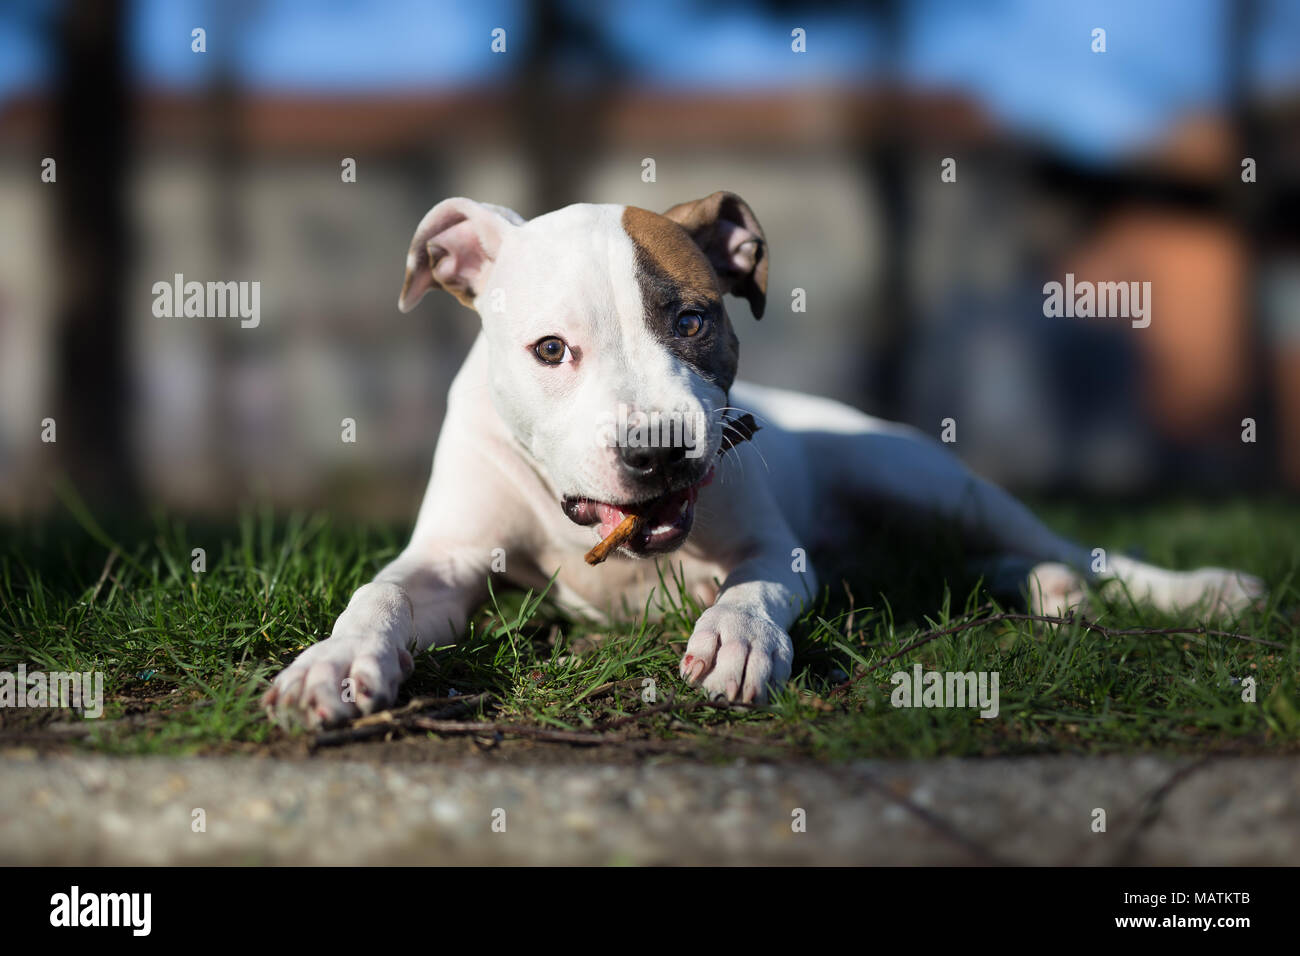 American staffordshire terrier puppy chewing stick - Stock Image